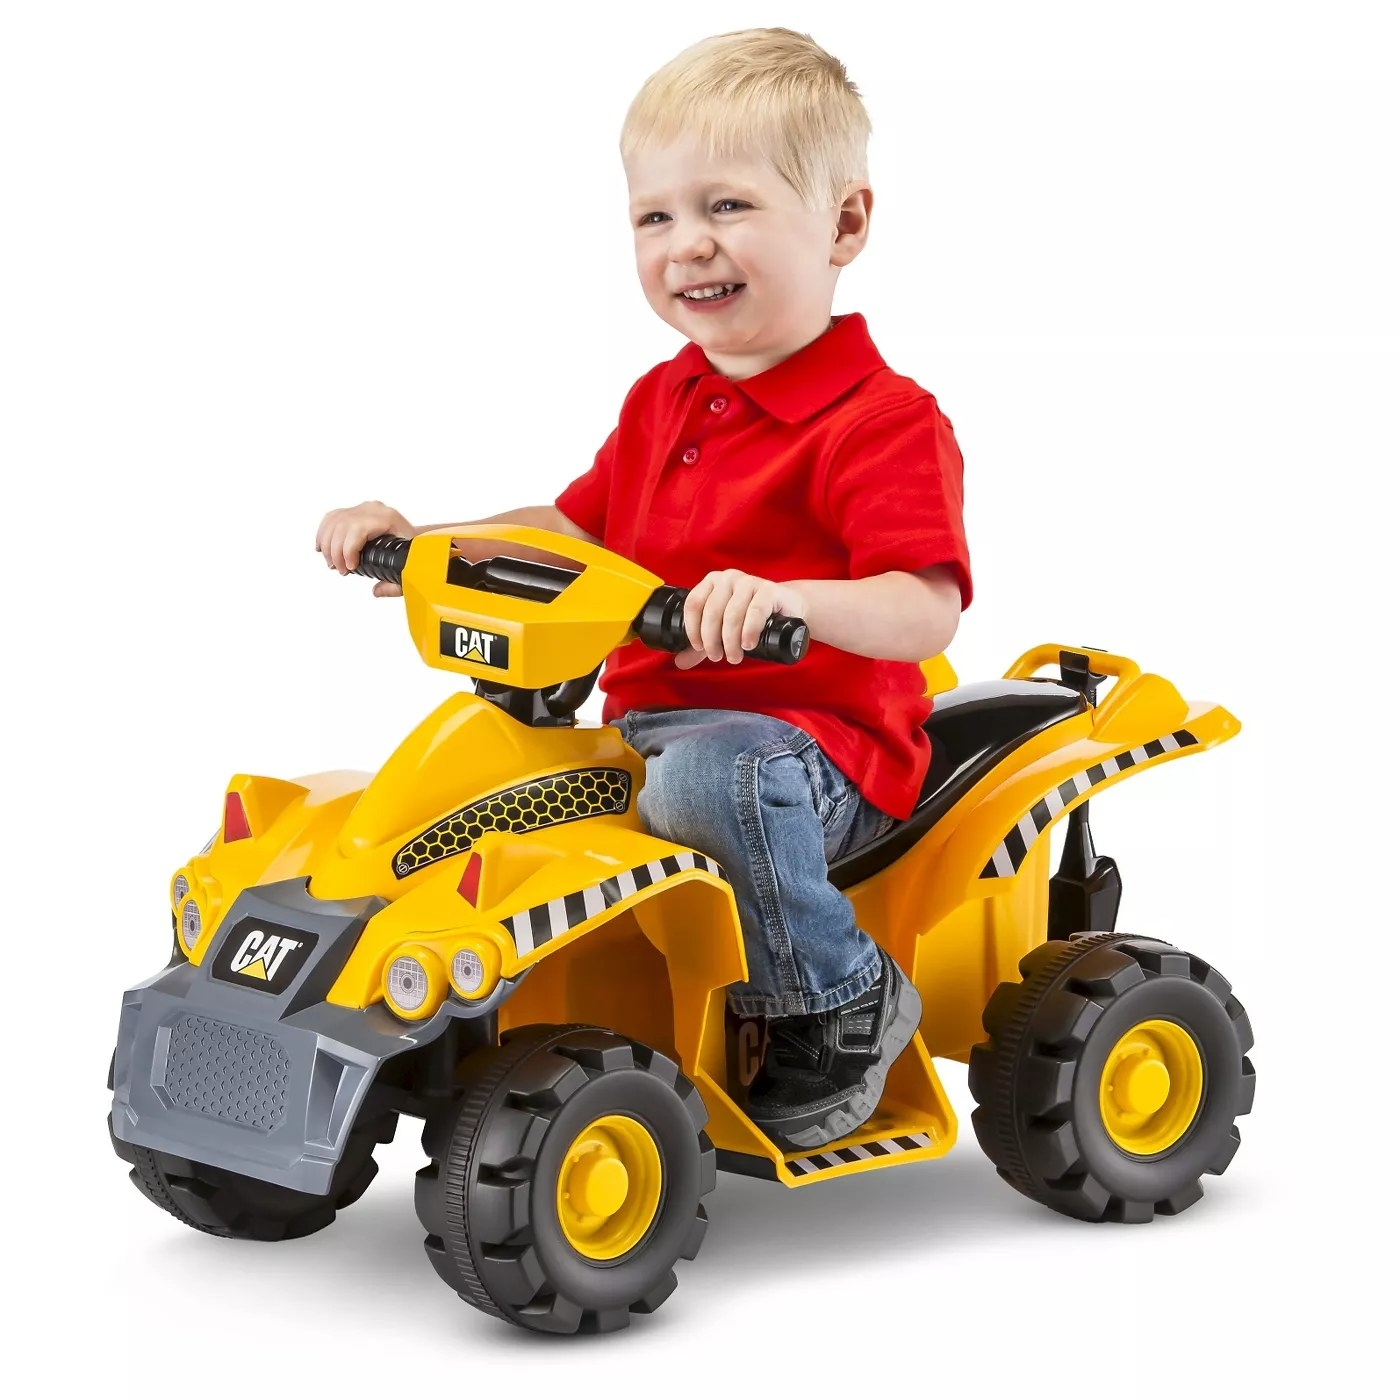 A child on his CAT tractor